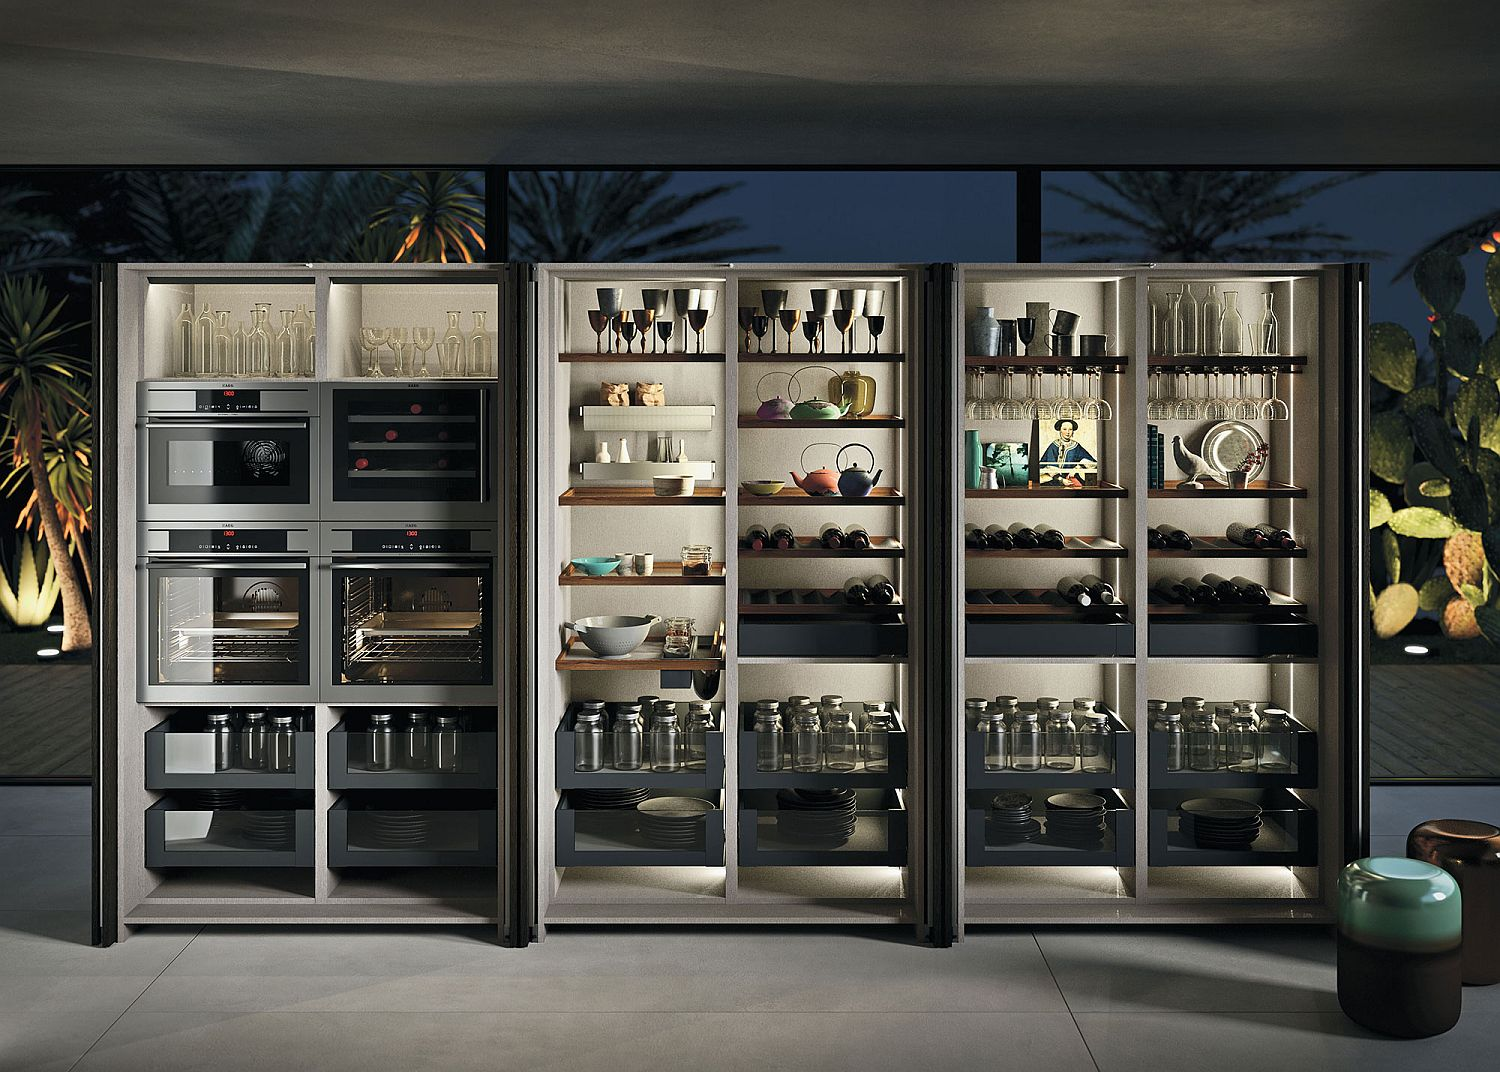 Modular glass door kitchen cabinets with beautiful LED strip lighting